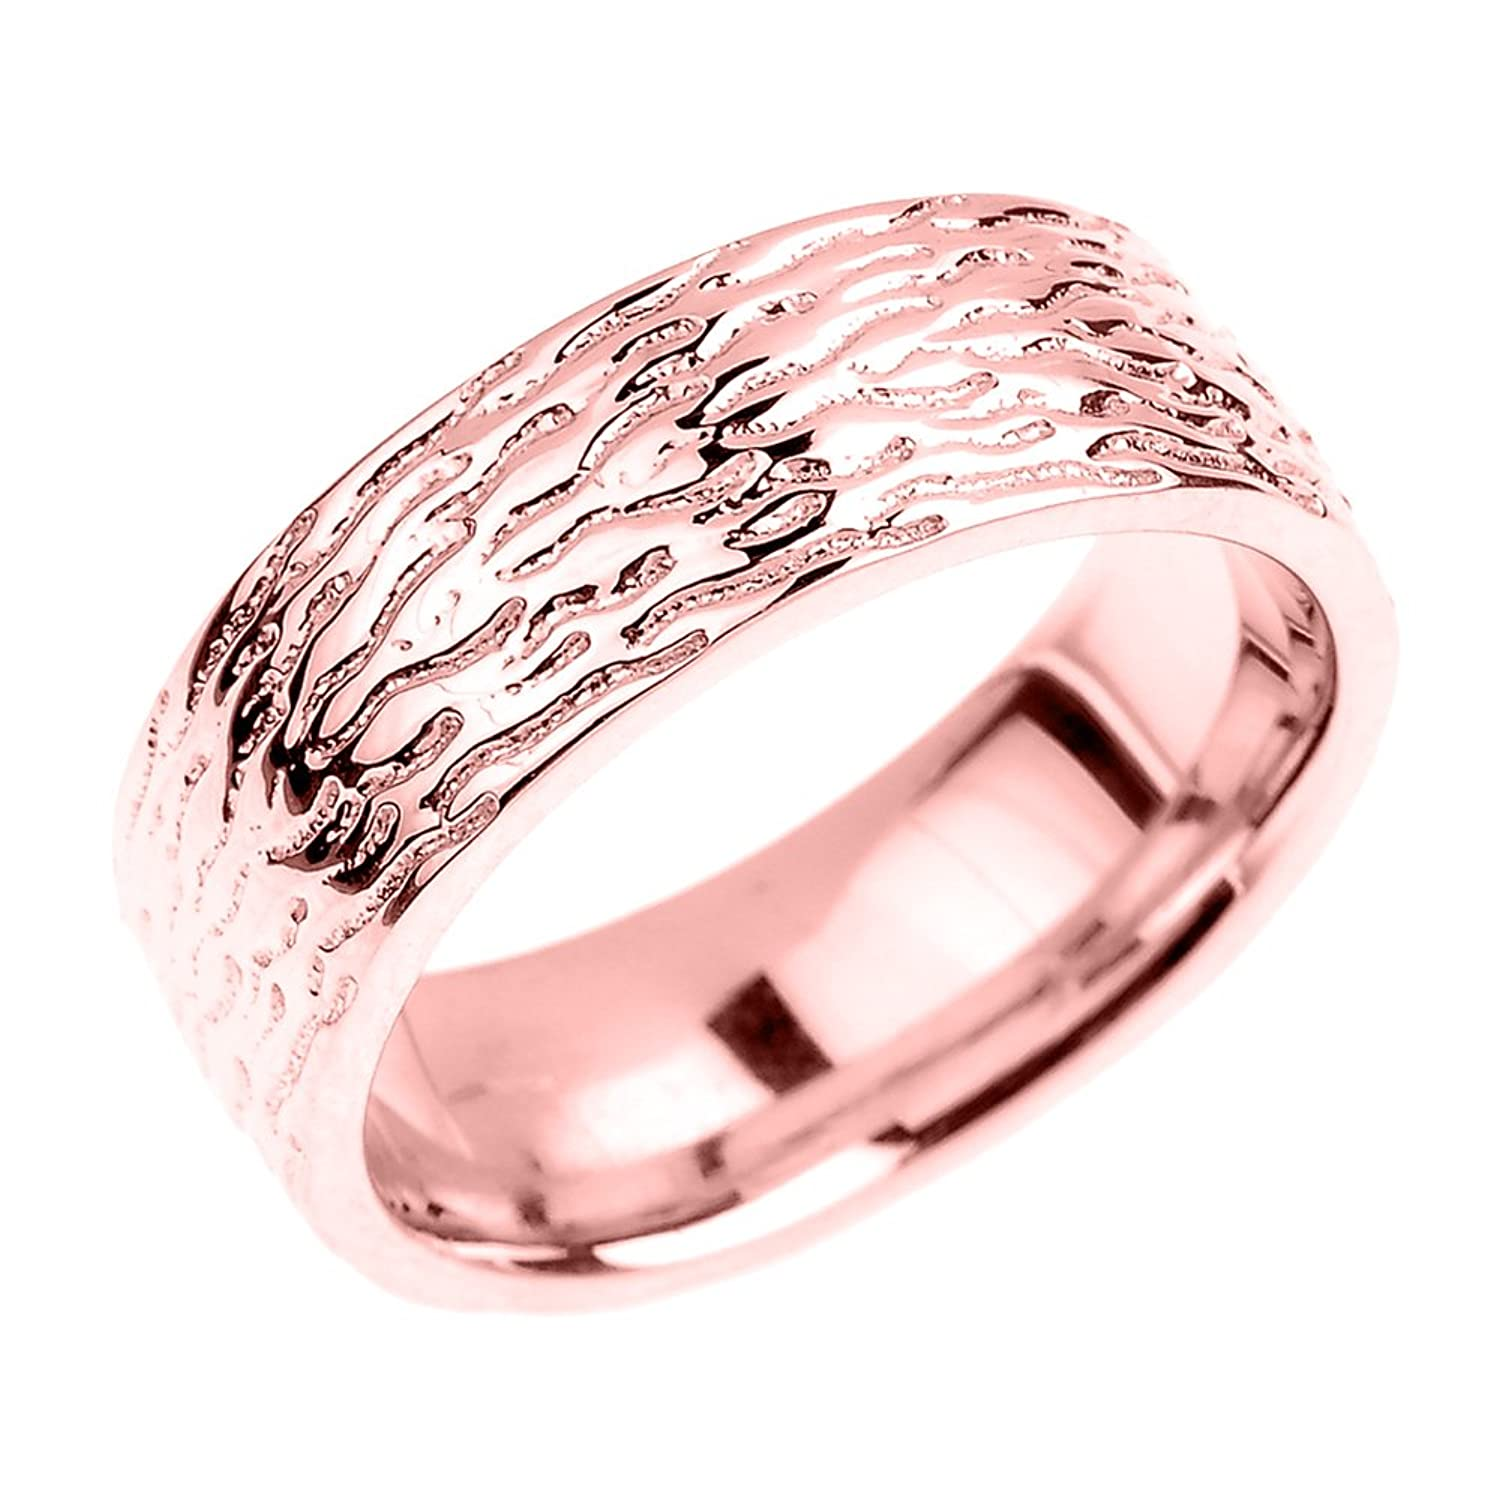 Amazon.com: Solid 14k Rose Gold Textured 7mm Wedding Ring: Claddagh ...